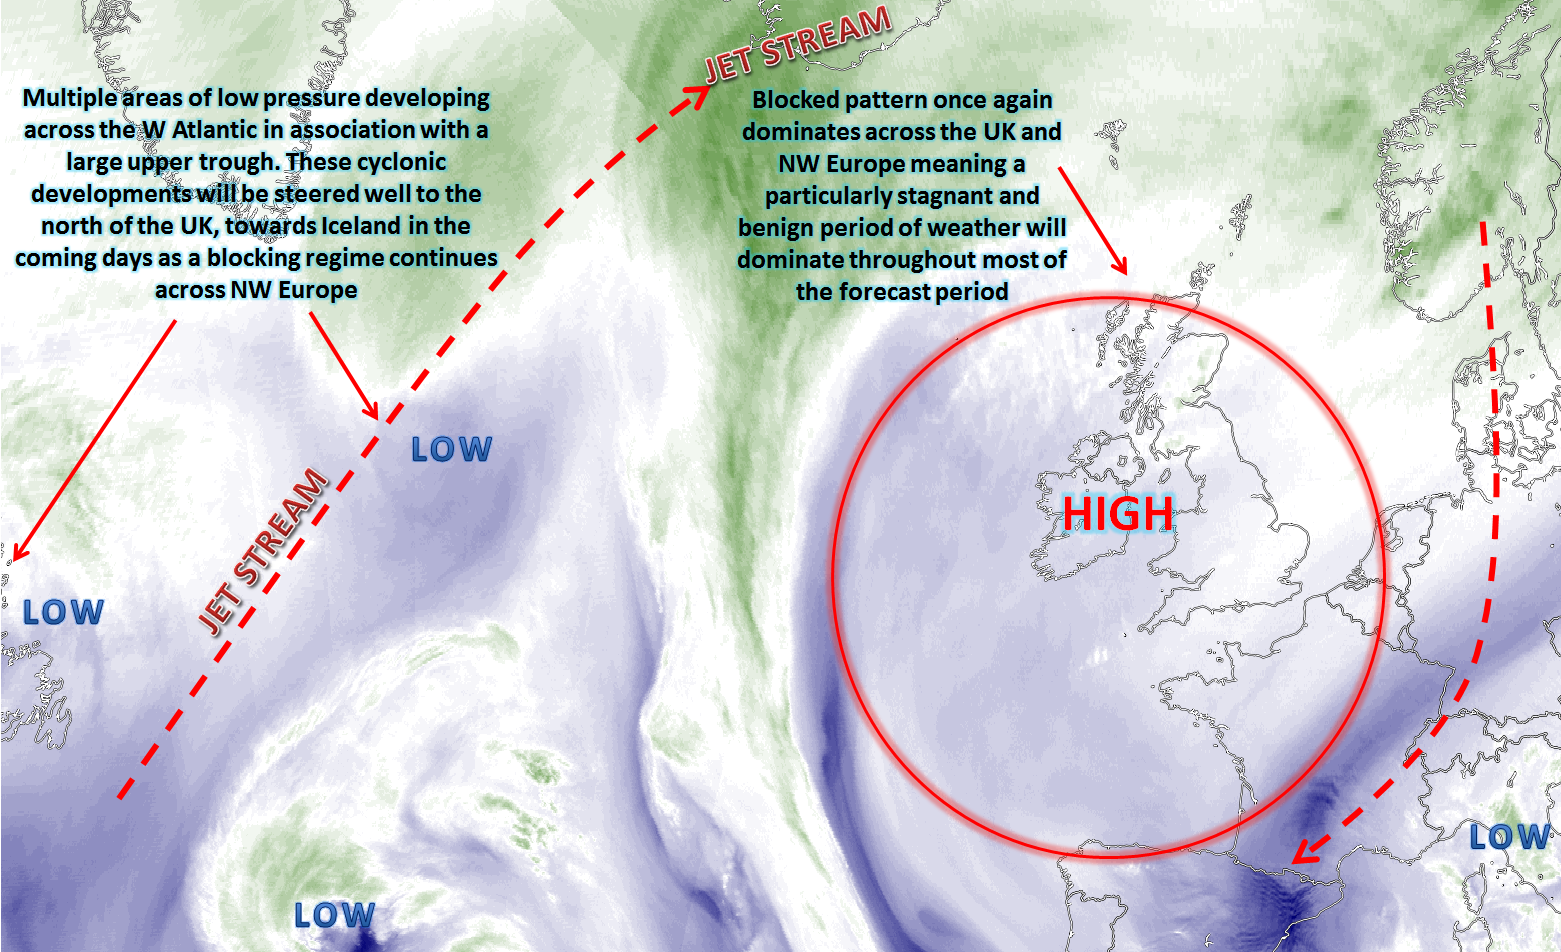 Synoptic Guidance - 17th January - Blocked Pattern Dominating